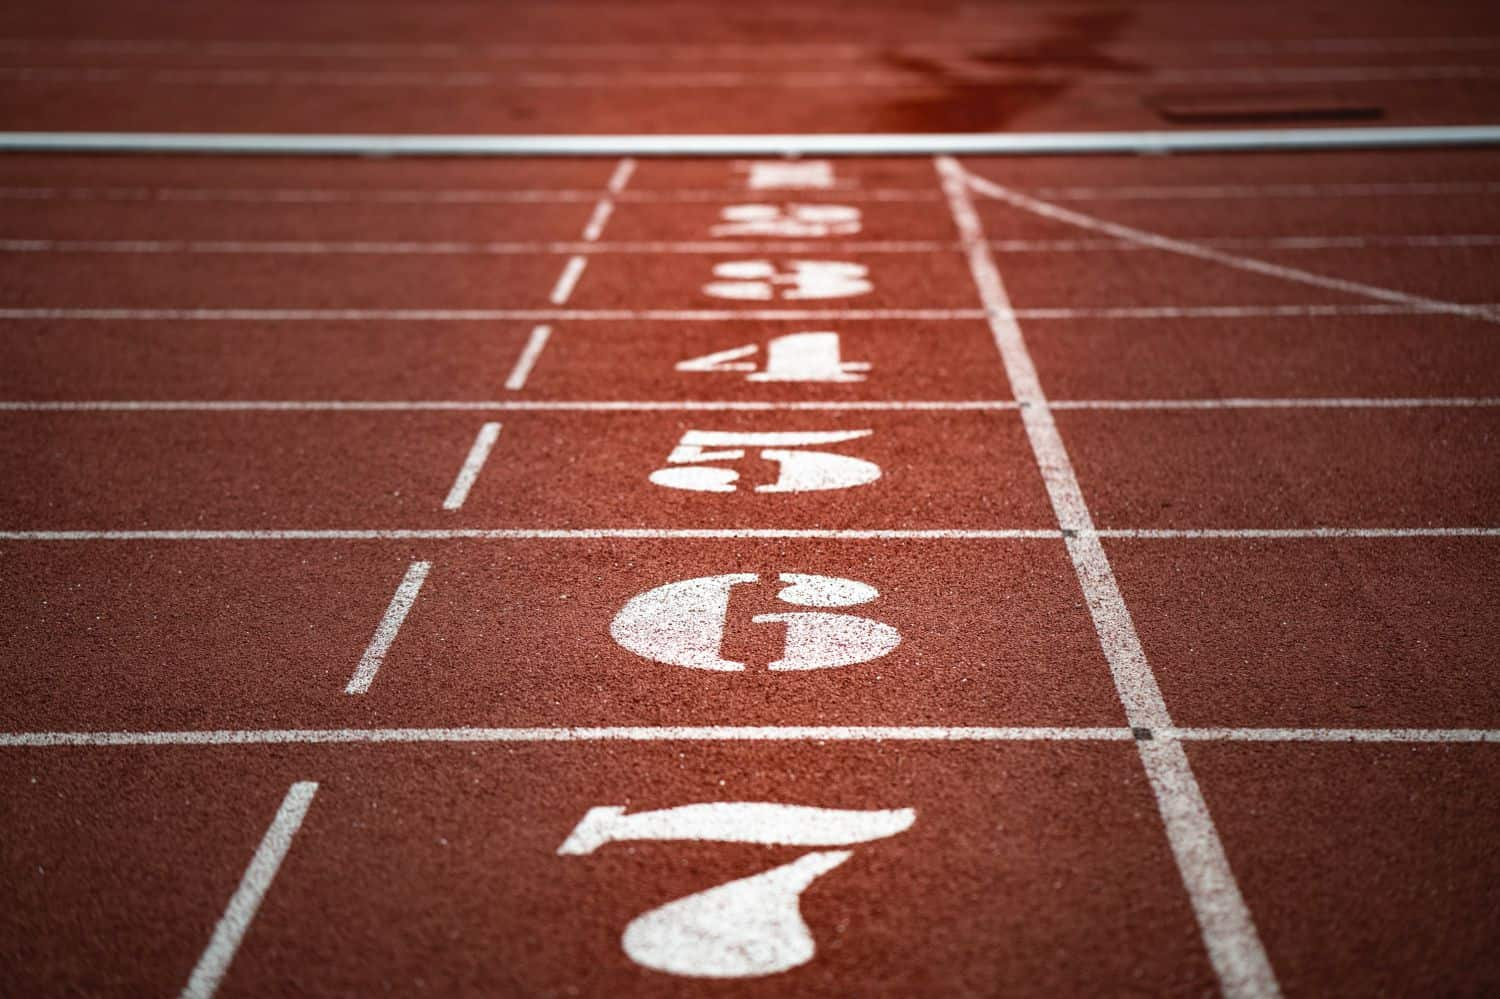 Starting line numbers on running track